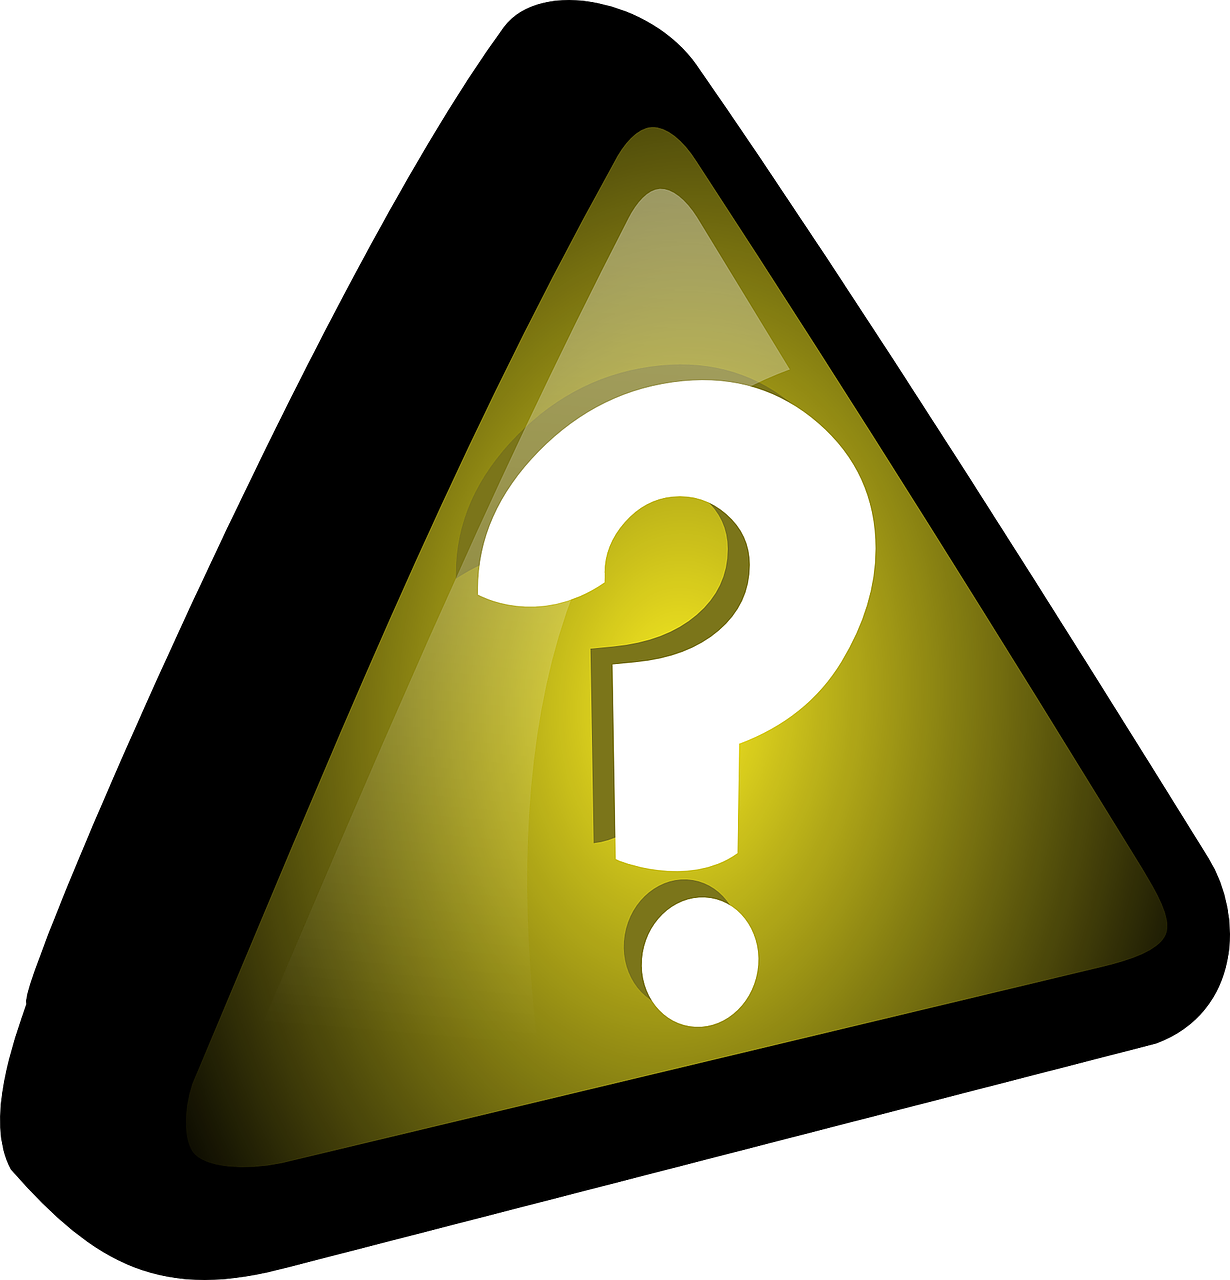 help,info,support,sign,triangle,question mark,icon,query,yellow,punctuation,symbol,question,free vector graphics,free pictures, free photos, free images, royalty free, free illustrations, public domain